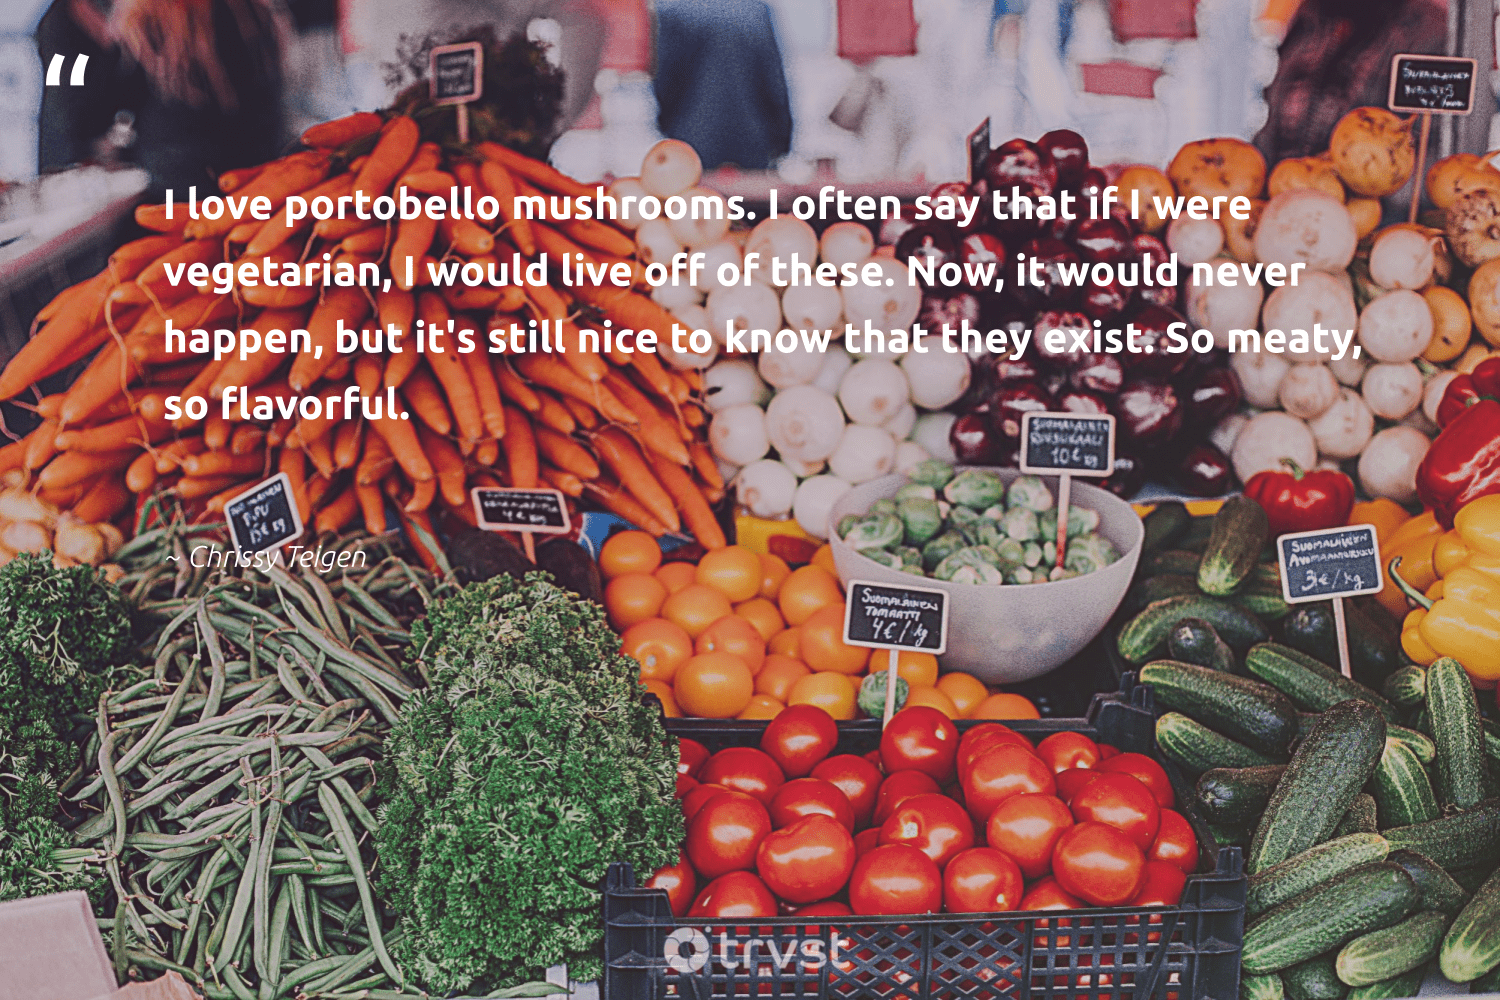 """""""I love portobello mushrooms. I often say that if I were vegetarian, I would live off of these. Now, it would never happen, but it's still nice to know that they exist. So meaty, so flavorful.""""  - Chrissy Teigen #trvst #quotes #vegan #love #vegetarian #govegan #sustainable #gogreen #planetearthfirst #sustainability #fashion #changetheworld"""